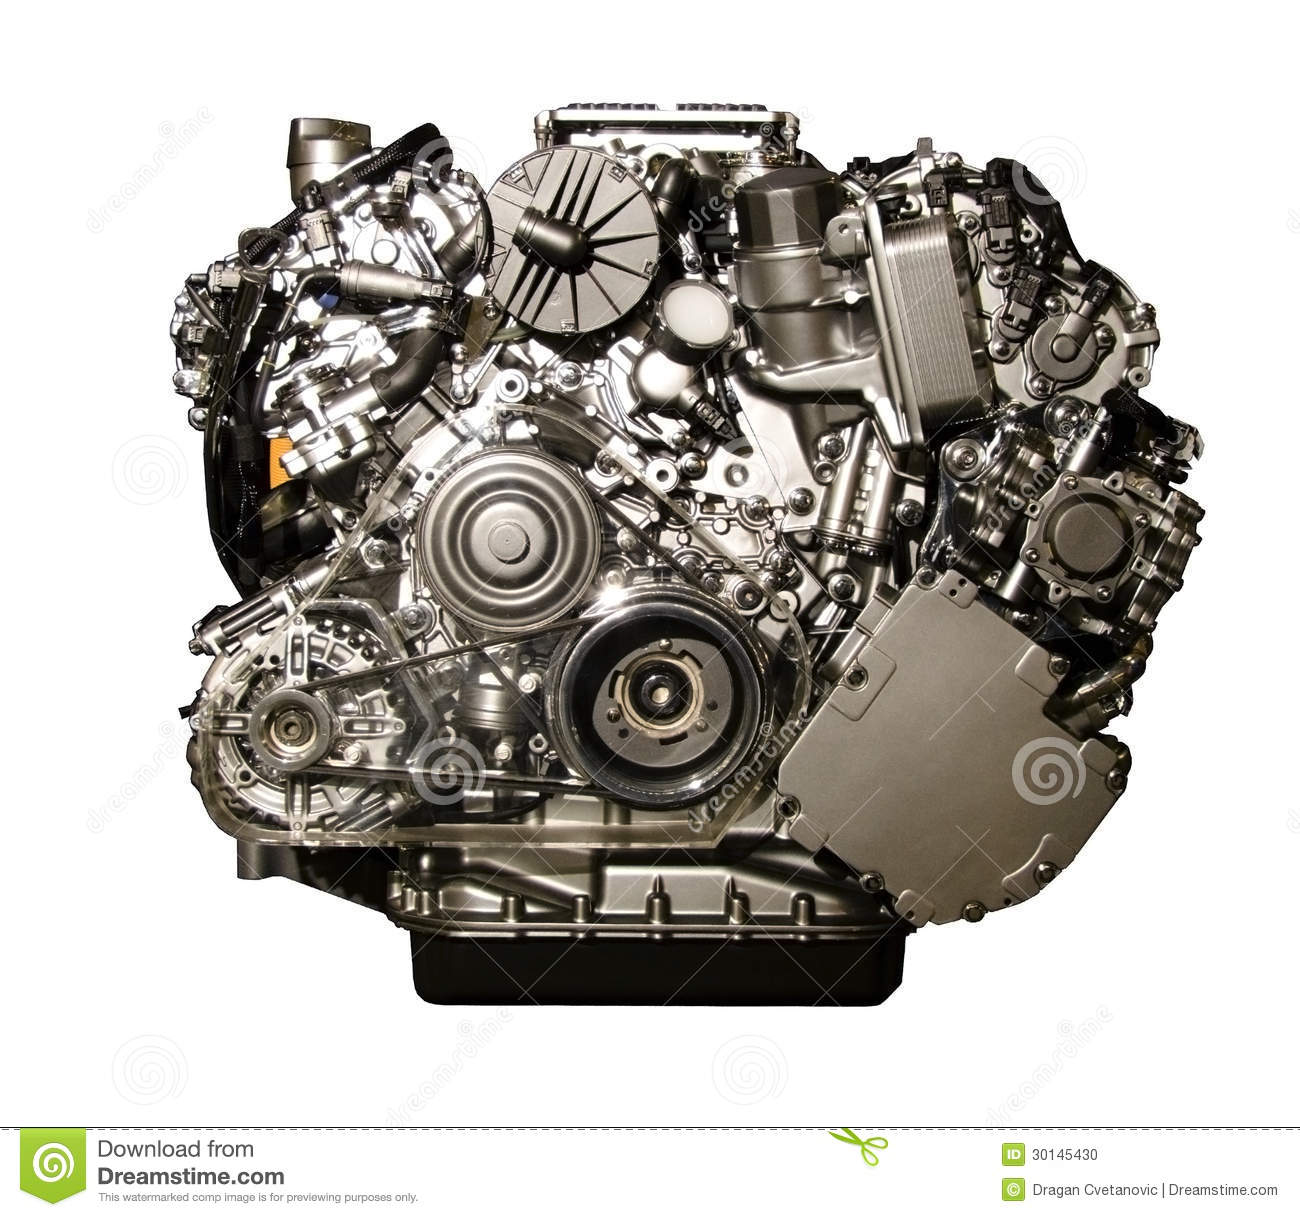 hybrid car engine from mercedes stock photo image 30145430